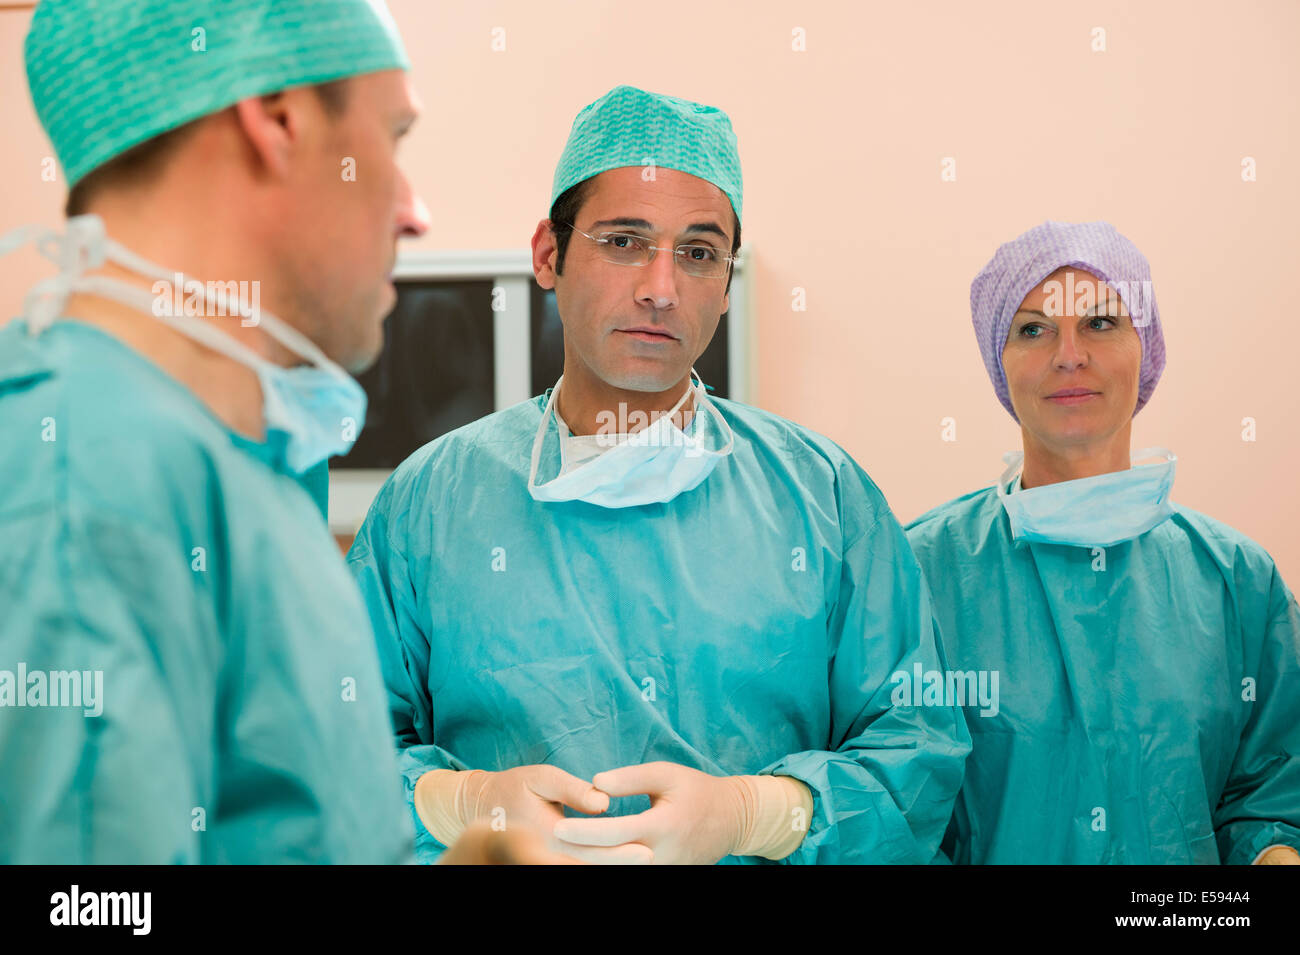 Surgeons in an operating room - Stock Image